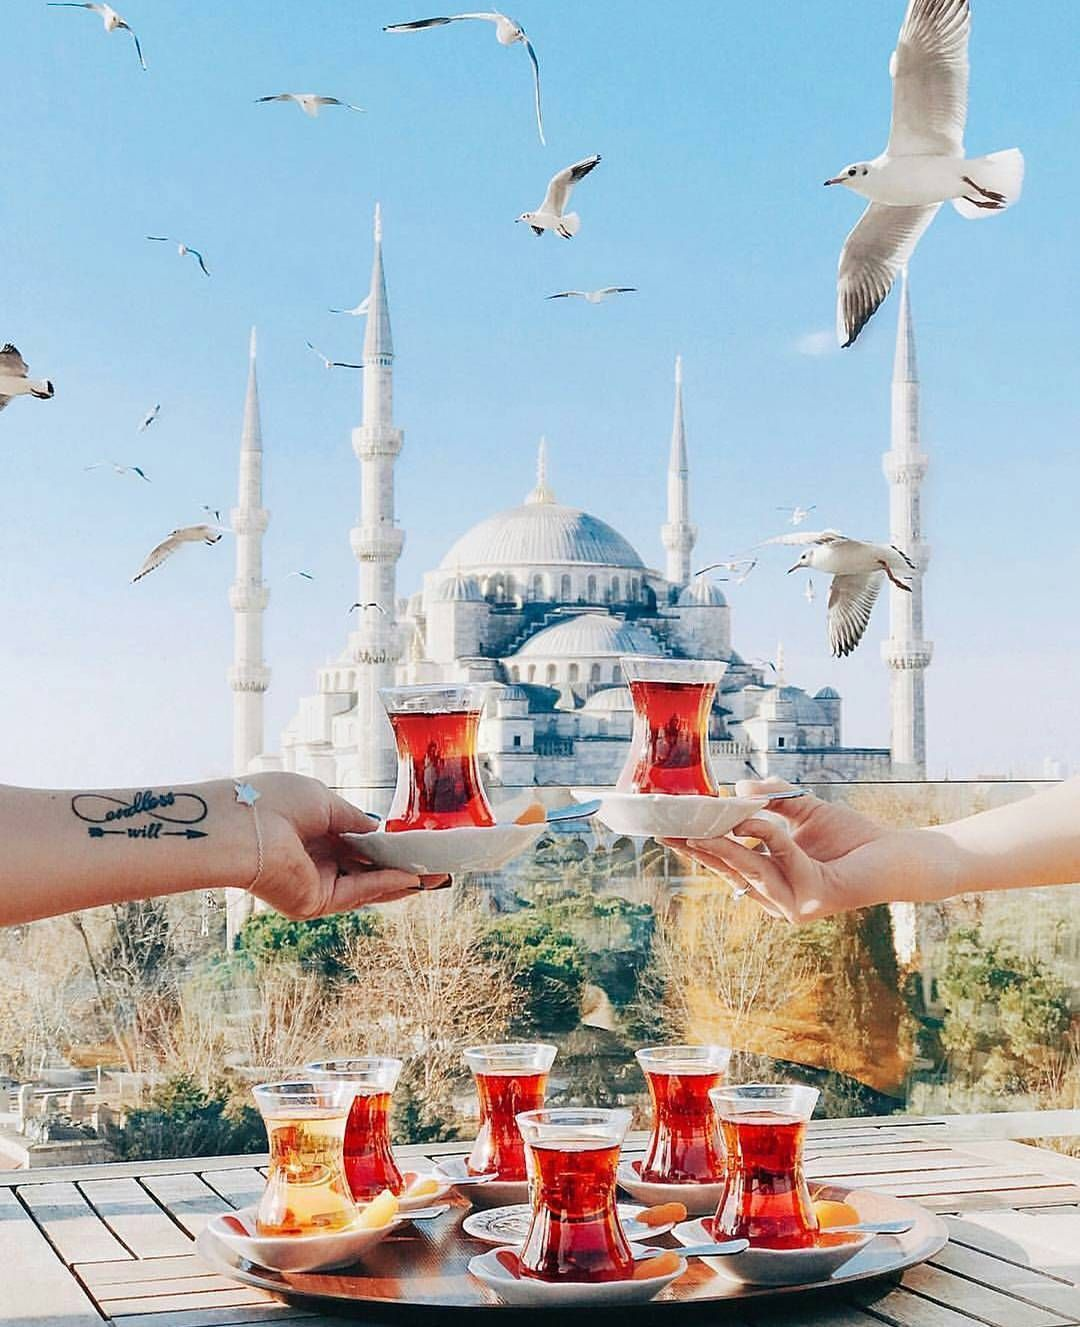 4 Begenme 1 Yorum Instagram 39 Da Grand Turkish Bazaar Grandturkishbazaar Quot Good M Europe Travel Turkey Travel Travel Inspiration Destinations